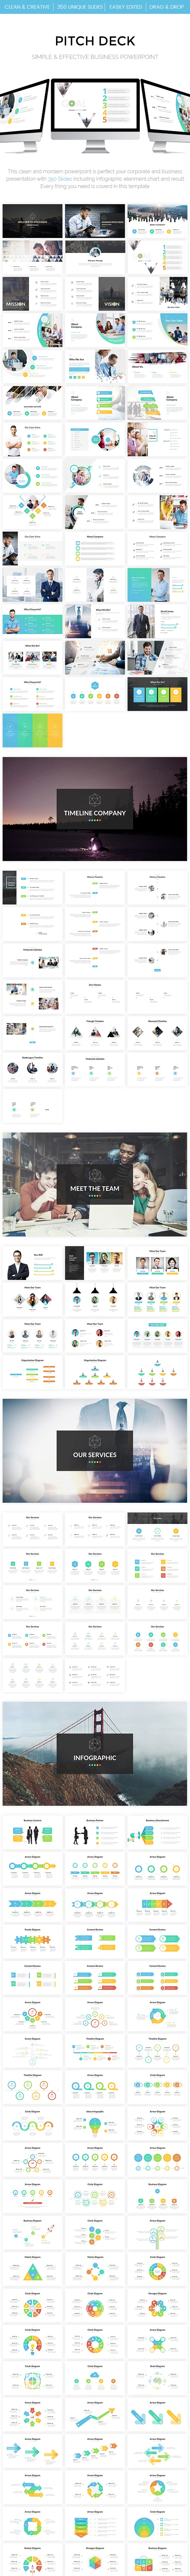 Business - Pitch Deck Powerpoint Template - Business PowerPoint Templates